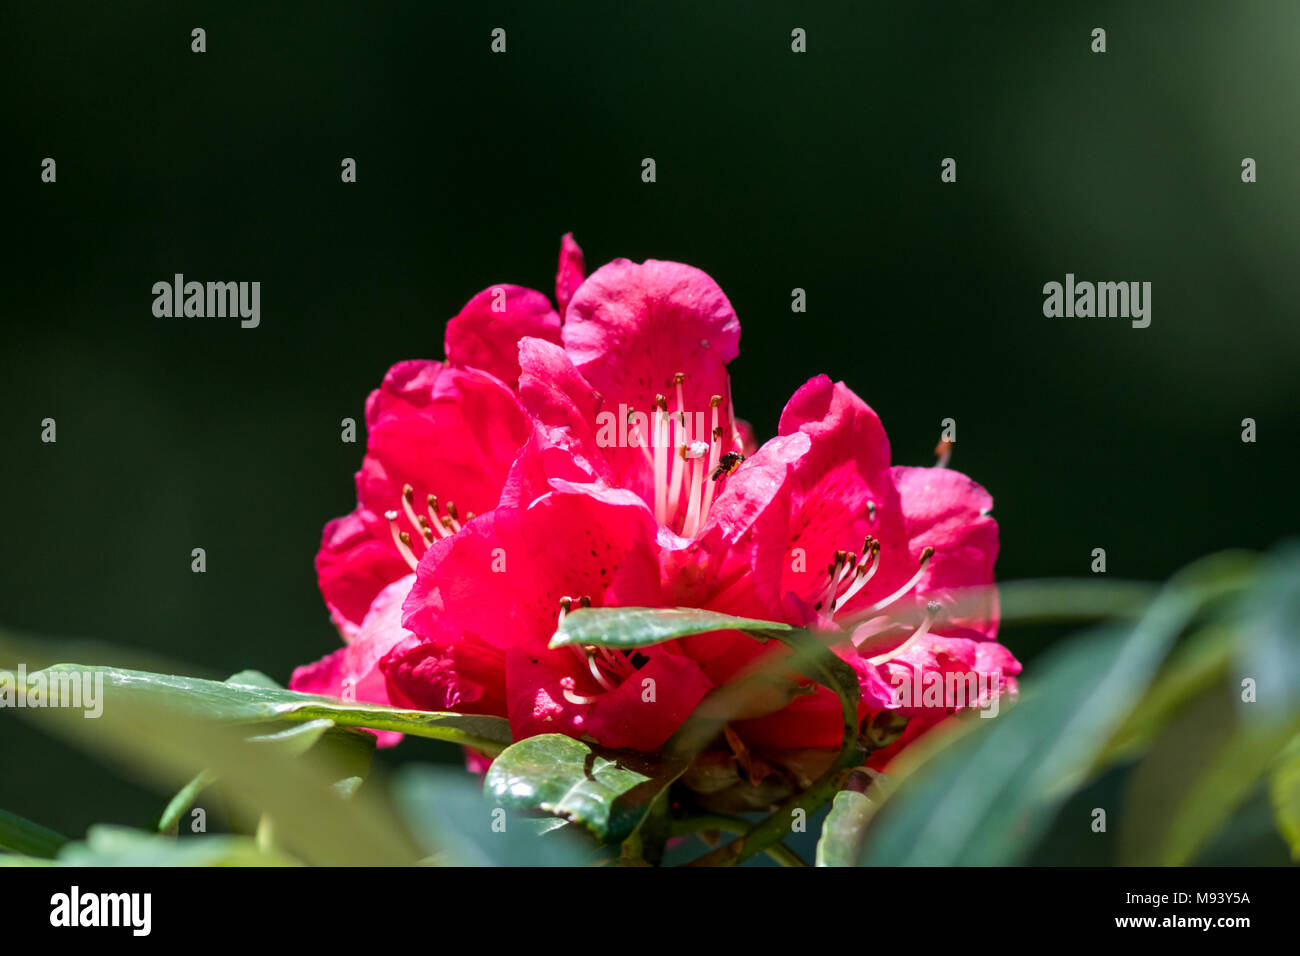 Rhododendron (Ericaceae) flowers in Great Himalayan National Park near Kullu Manali, Himachal Pradesh, India - Stock Image